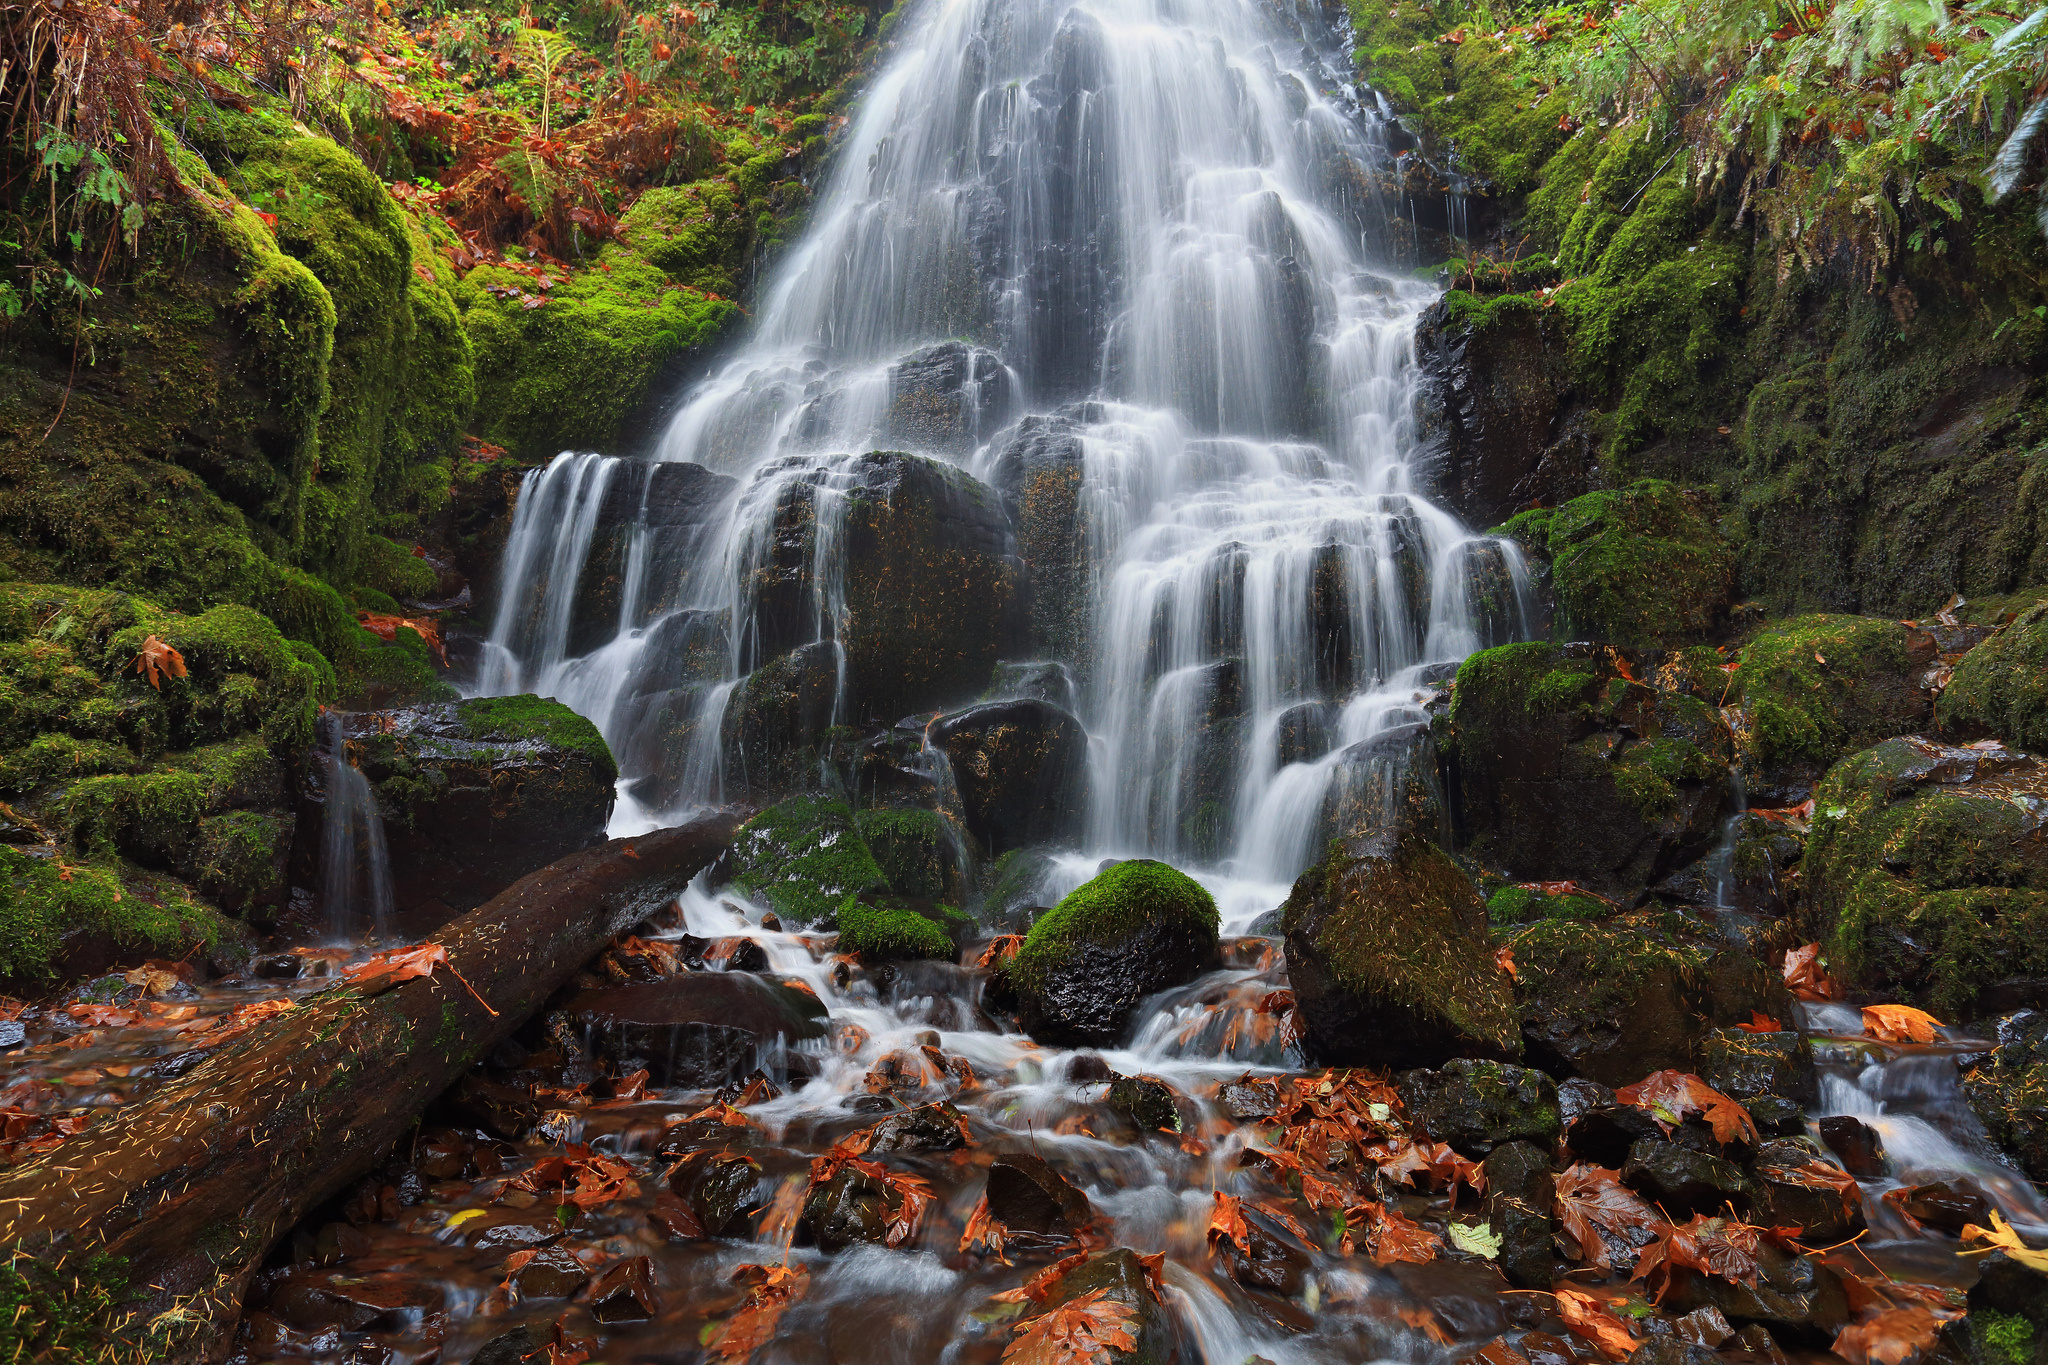 Falling Leaves Live Wallpaper Columbia River Oregon Waterfall Cascade Rocks Moss Leaves